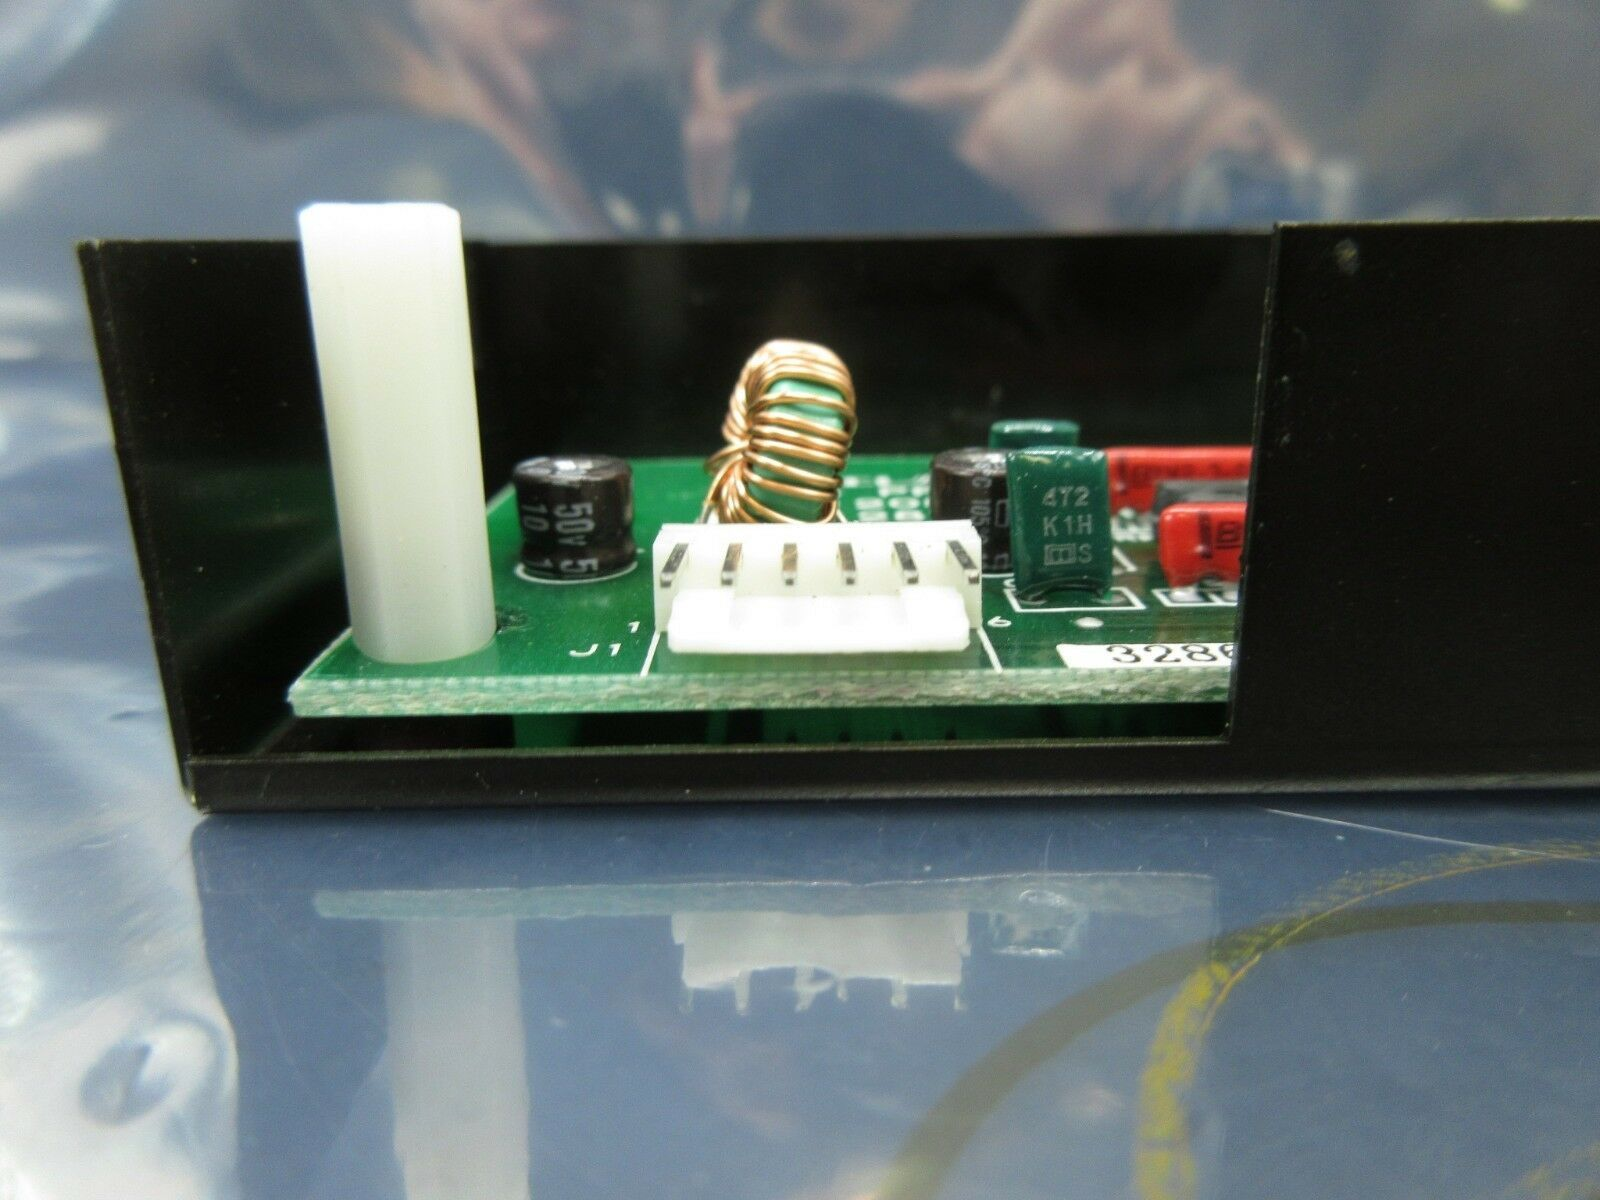 TEL Tokyo Electron 1208-001195-11 Pre Align Amp PCB 78 1281-001195-11 P-8 Used